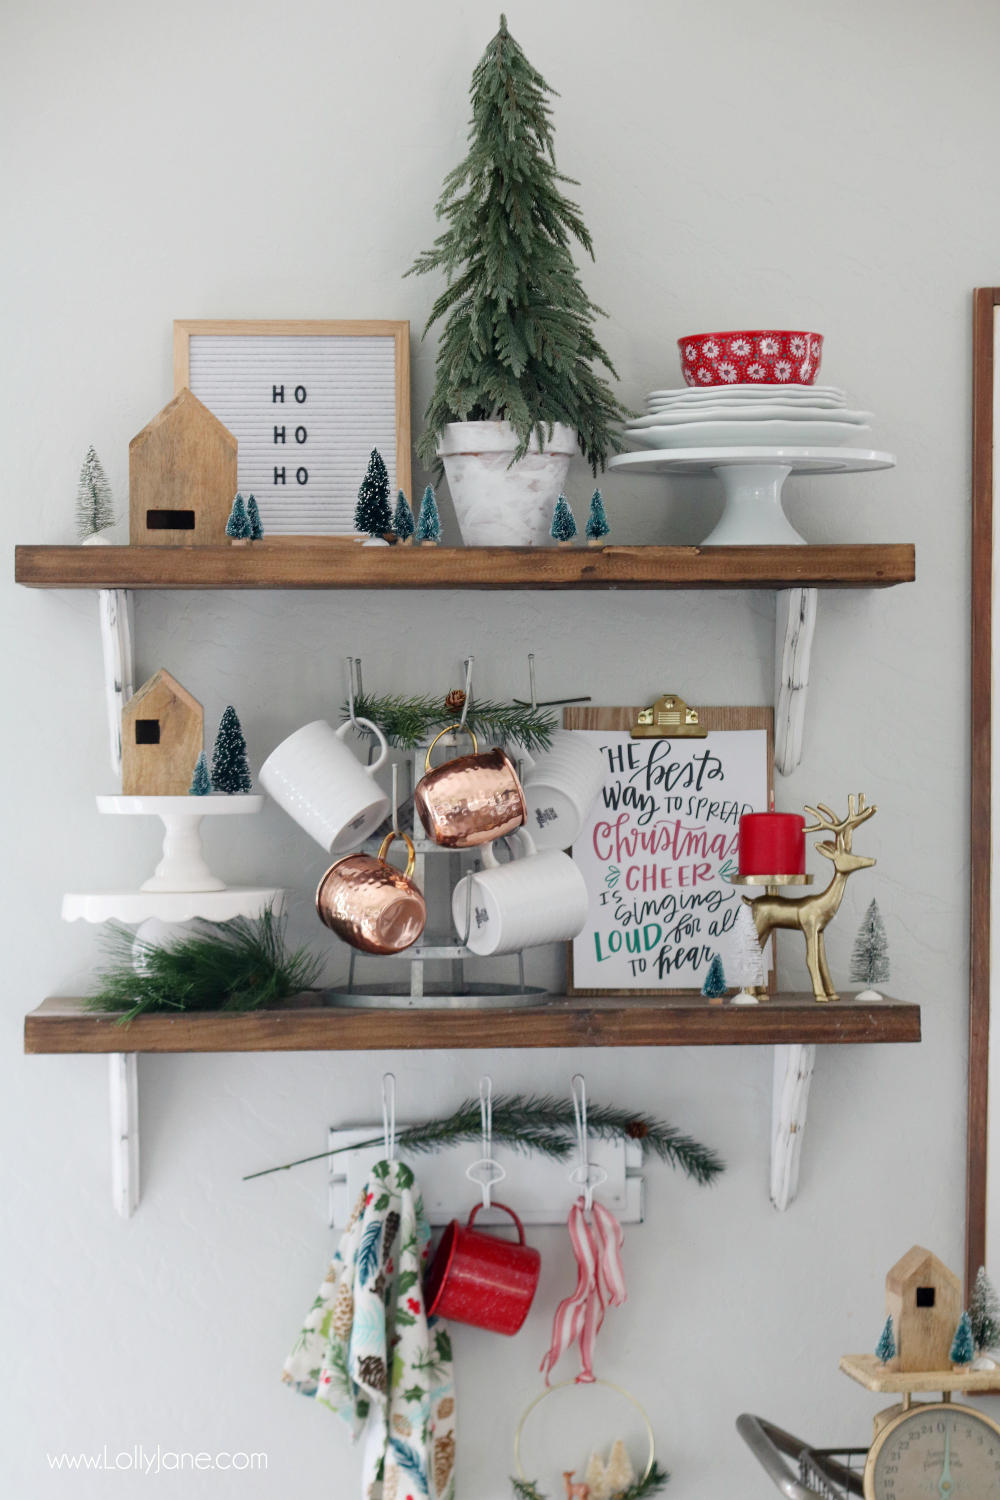 These modern farmhouse shelves all decked out for Christmas are too cute! Love the mug rack and cute cake stands! Love!